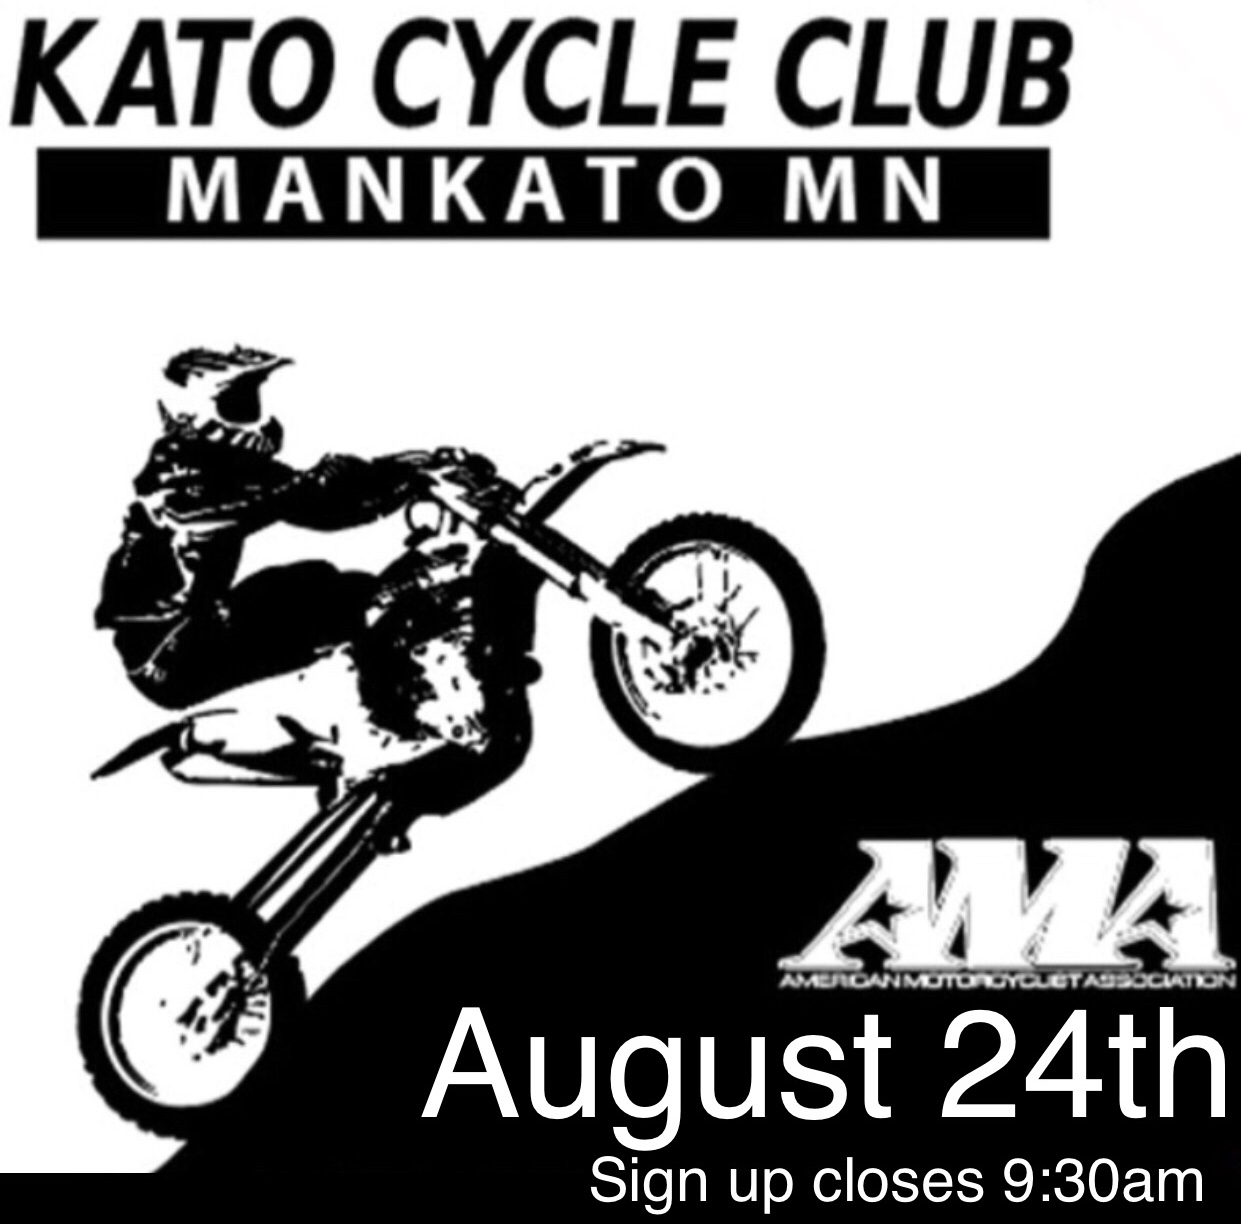 Last chance to Hillclimb at the Kato Cycle Club in 2019. Gates open at 7am sign up closes at 9:30 with first rider going up at 10am! Kato Cycle Club is located 7 miles south of Mankato on state highway 169. Concessions available on site. Admission 10$ kids 12-under and seniors 65+ are free!   http://www.katocycleclub.com/